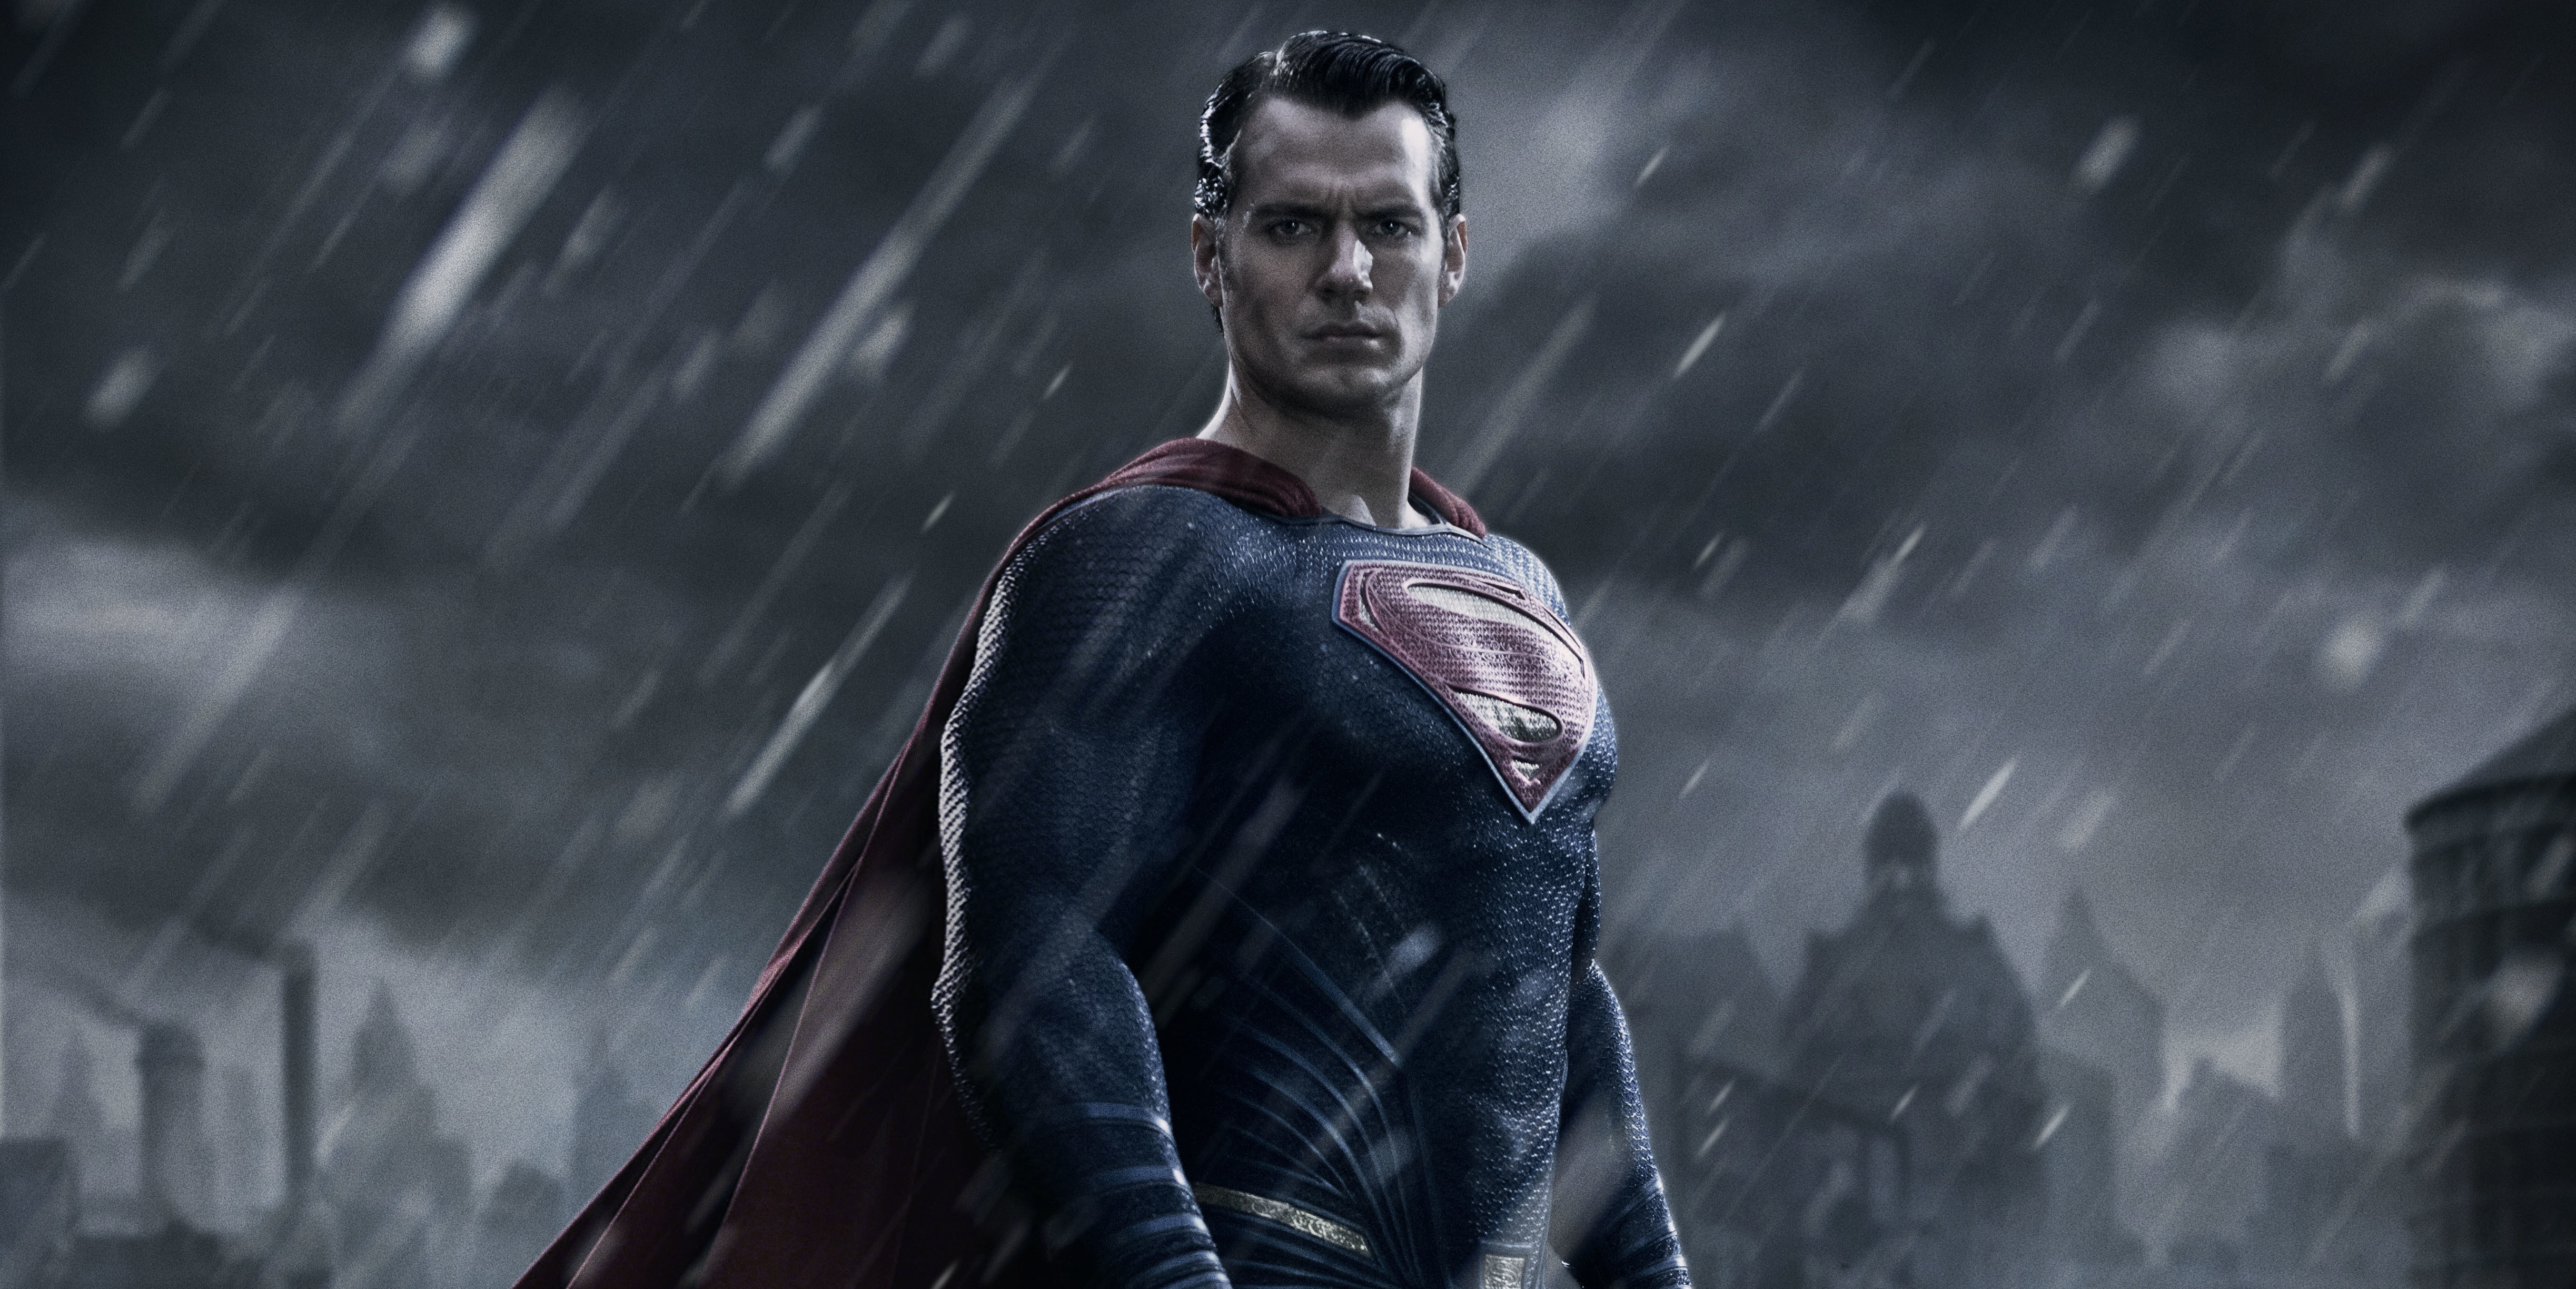 'Batman v. Superman' Rated PG-13 for 'Some Sensuality'